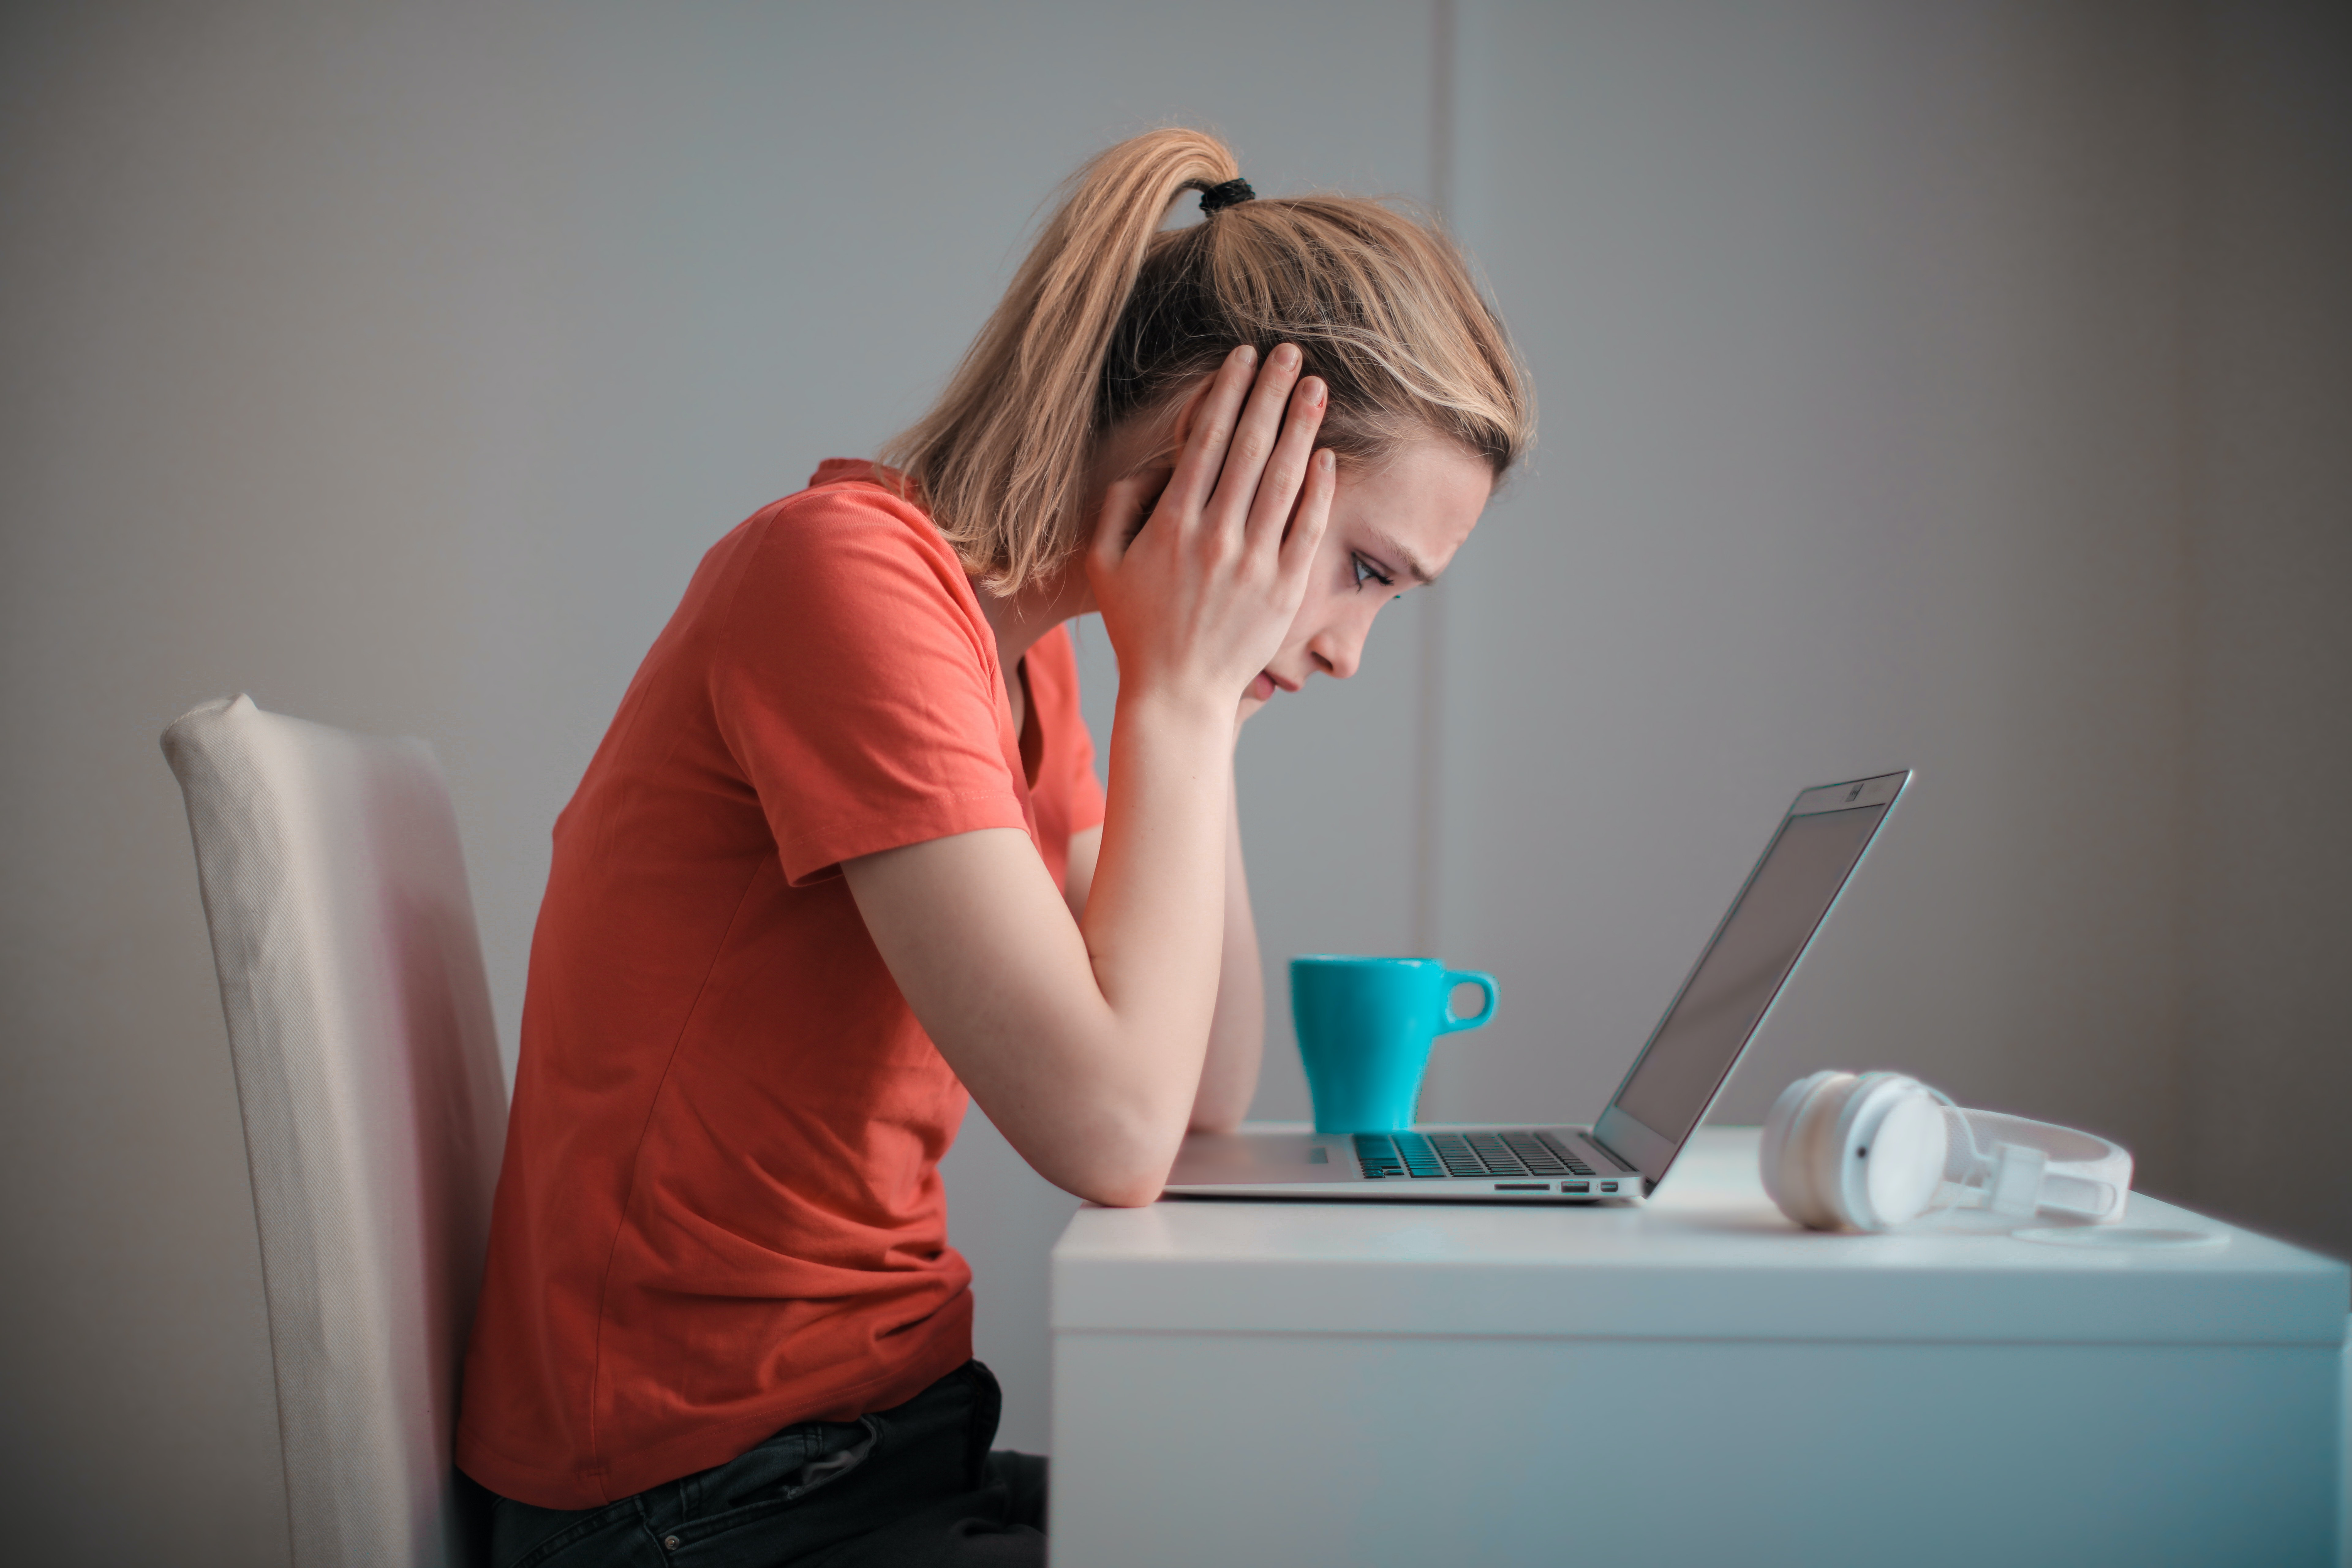 Stressed woman looking at laptop at her desk with mug and headphones